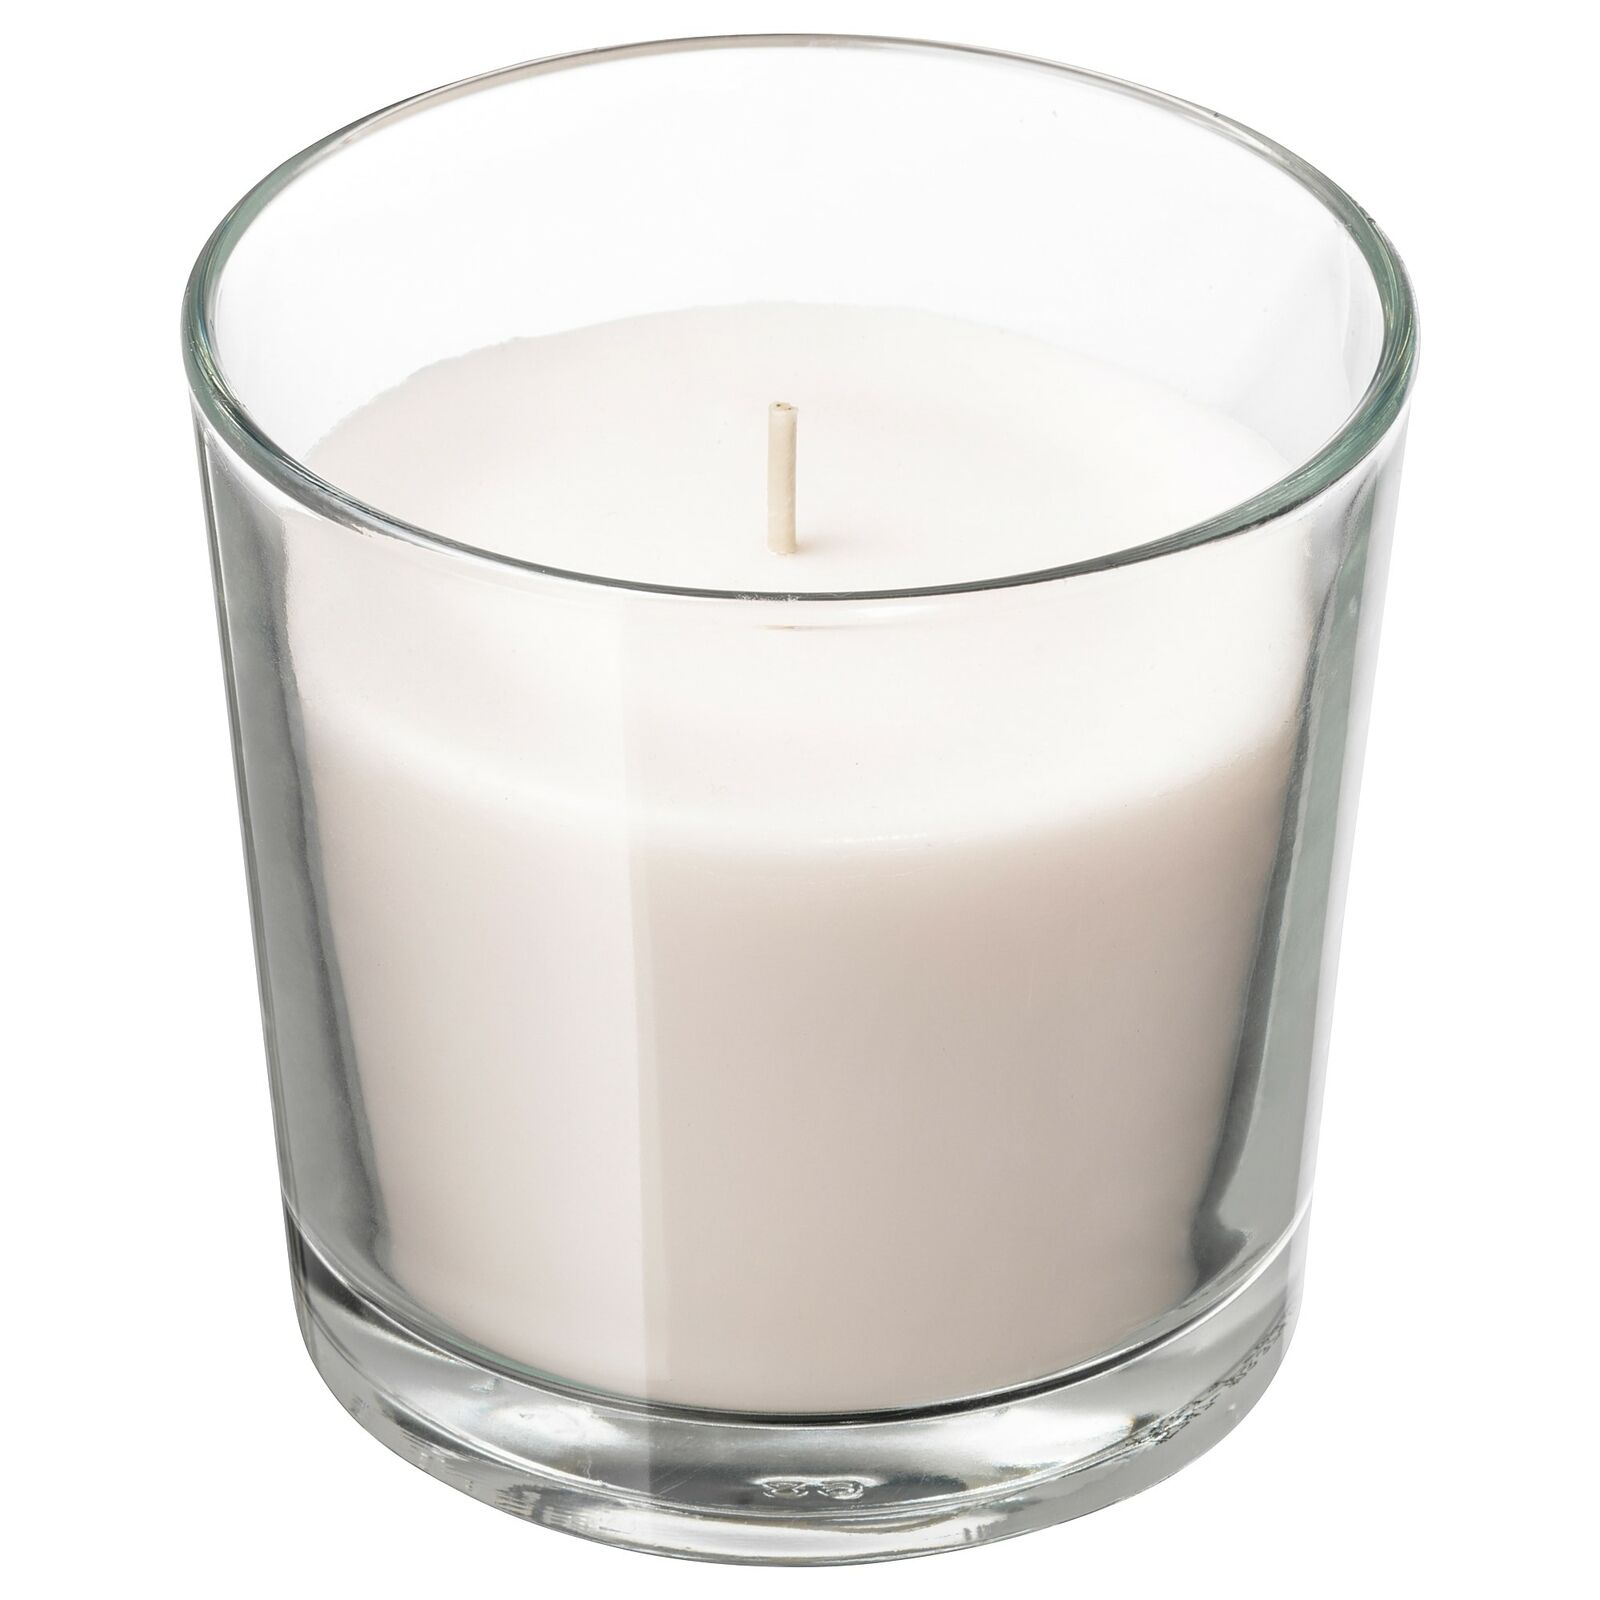 IKEA 603.374.19 Scented Candle in Glass Red